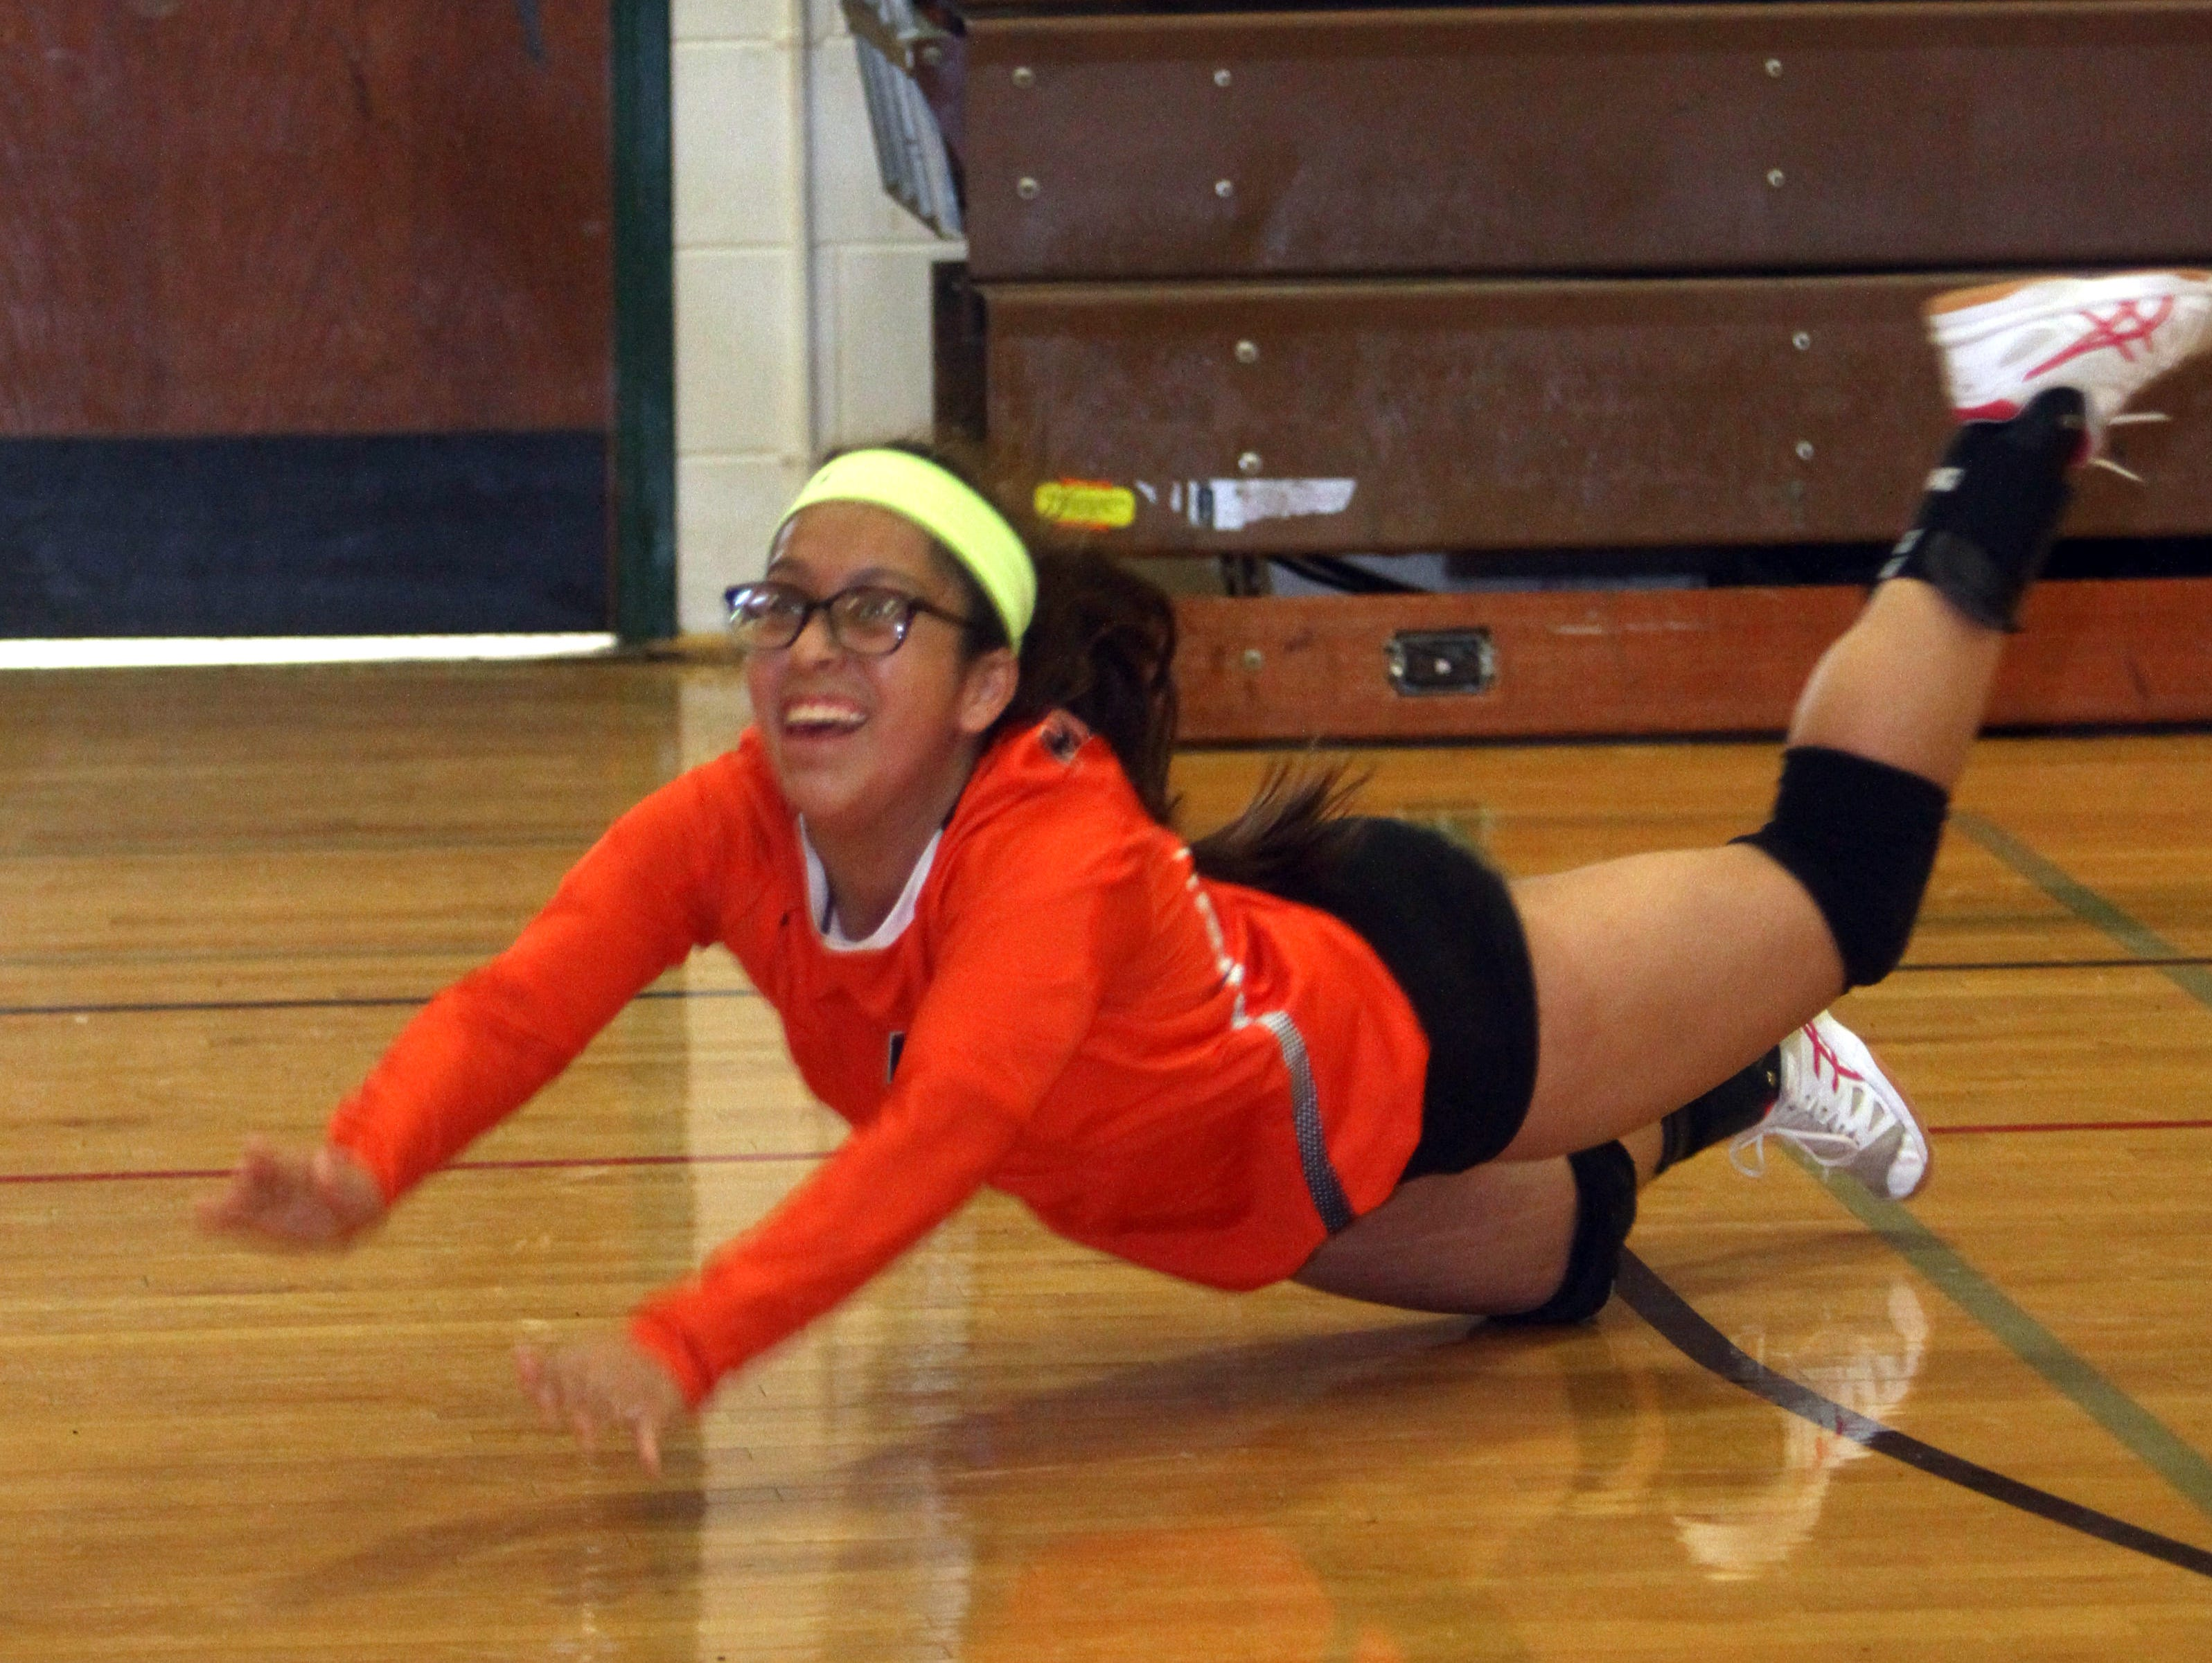 Mamaroneck's Leslie Morales dives for a shot the ball during a multi-team scrimmage at Clarkstown South High School Sept. 3, 2016.